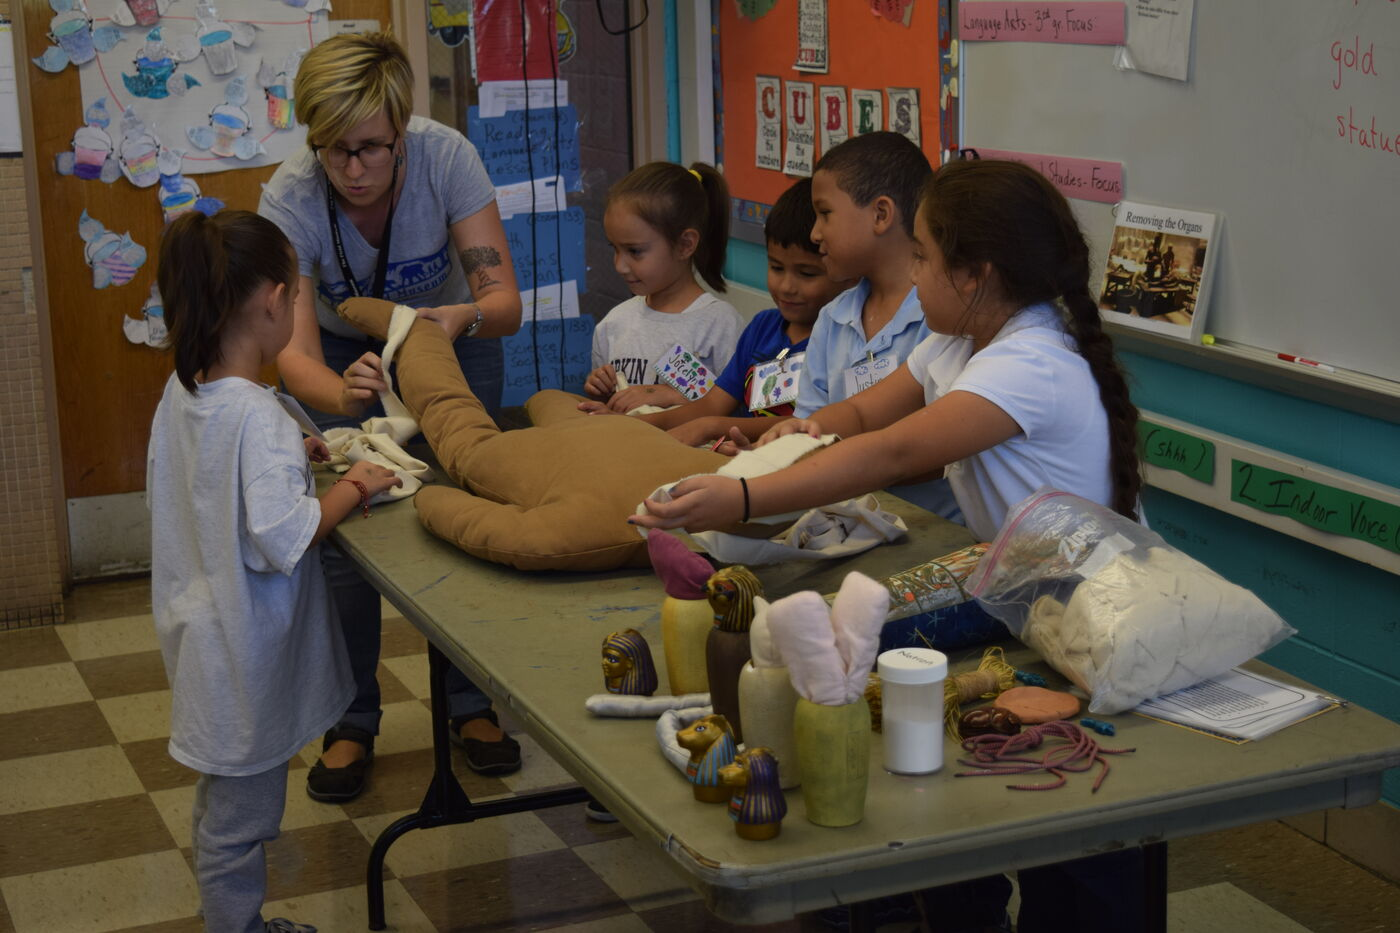 Park Voyagers instructor showing students a model of a mummy